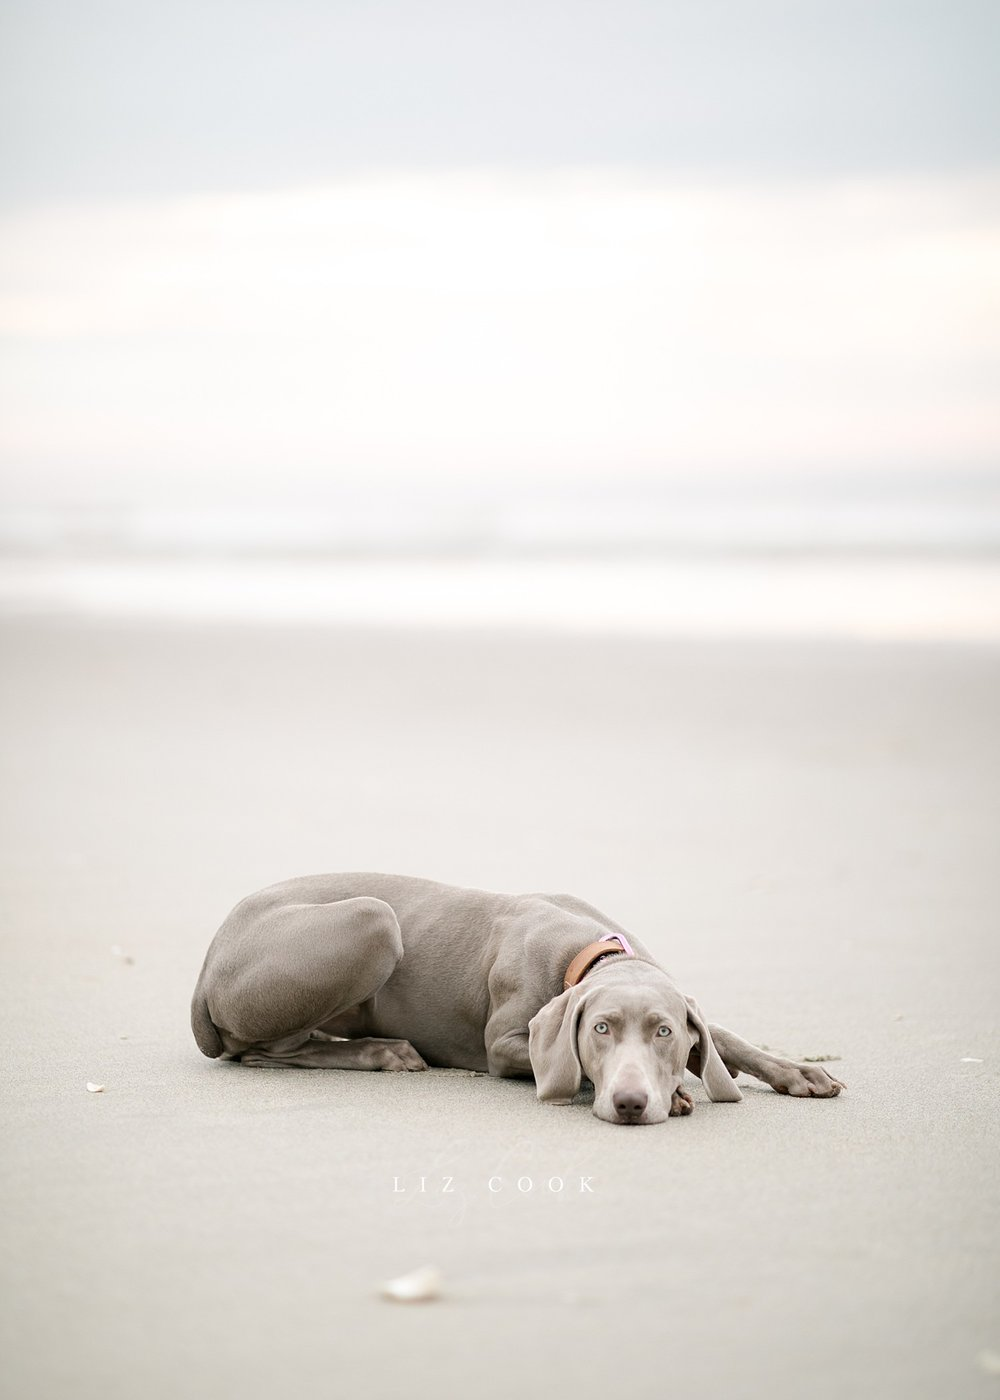 lynchburg_virginia_photography_studio_assistant_weimaraner_puppy_0013.jpg